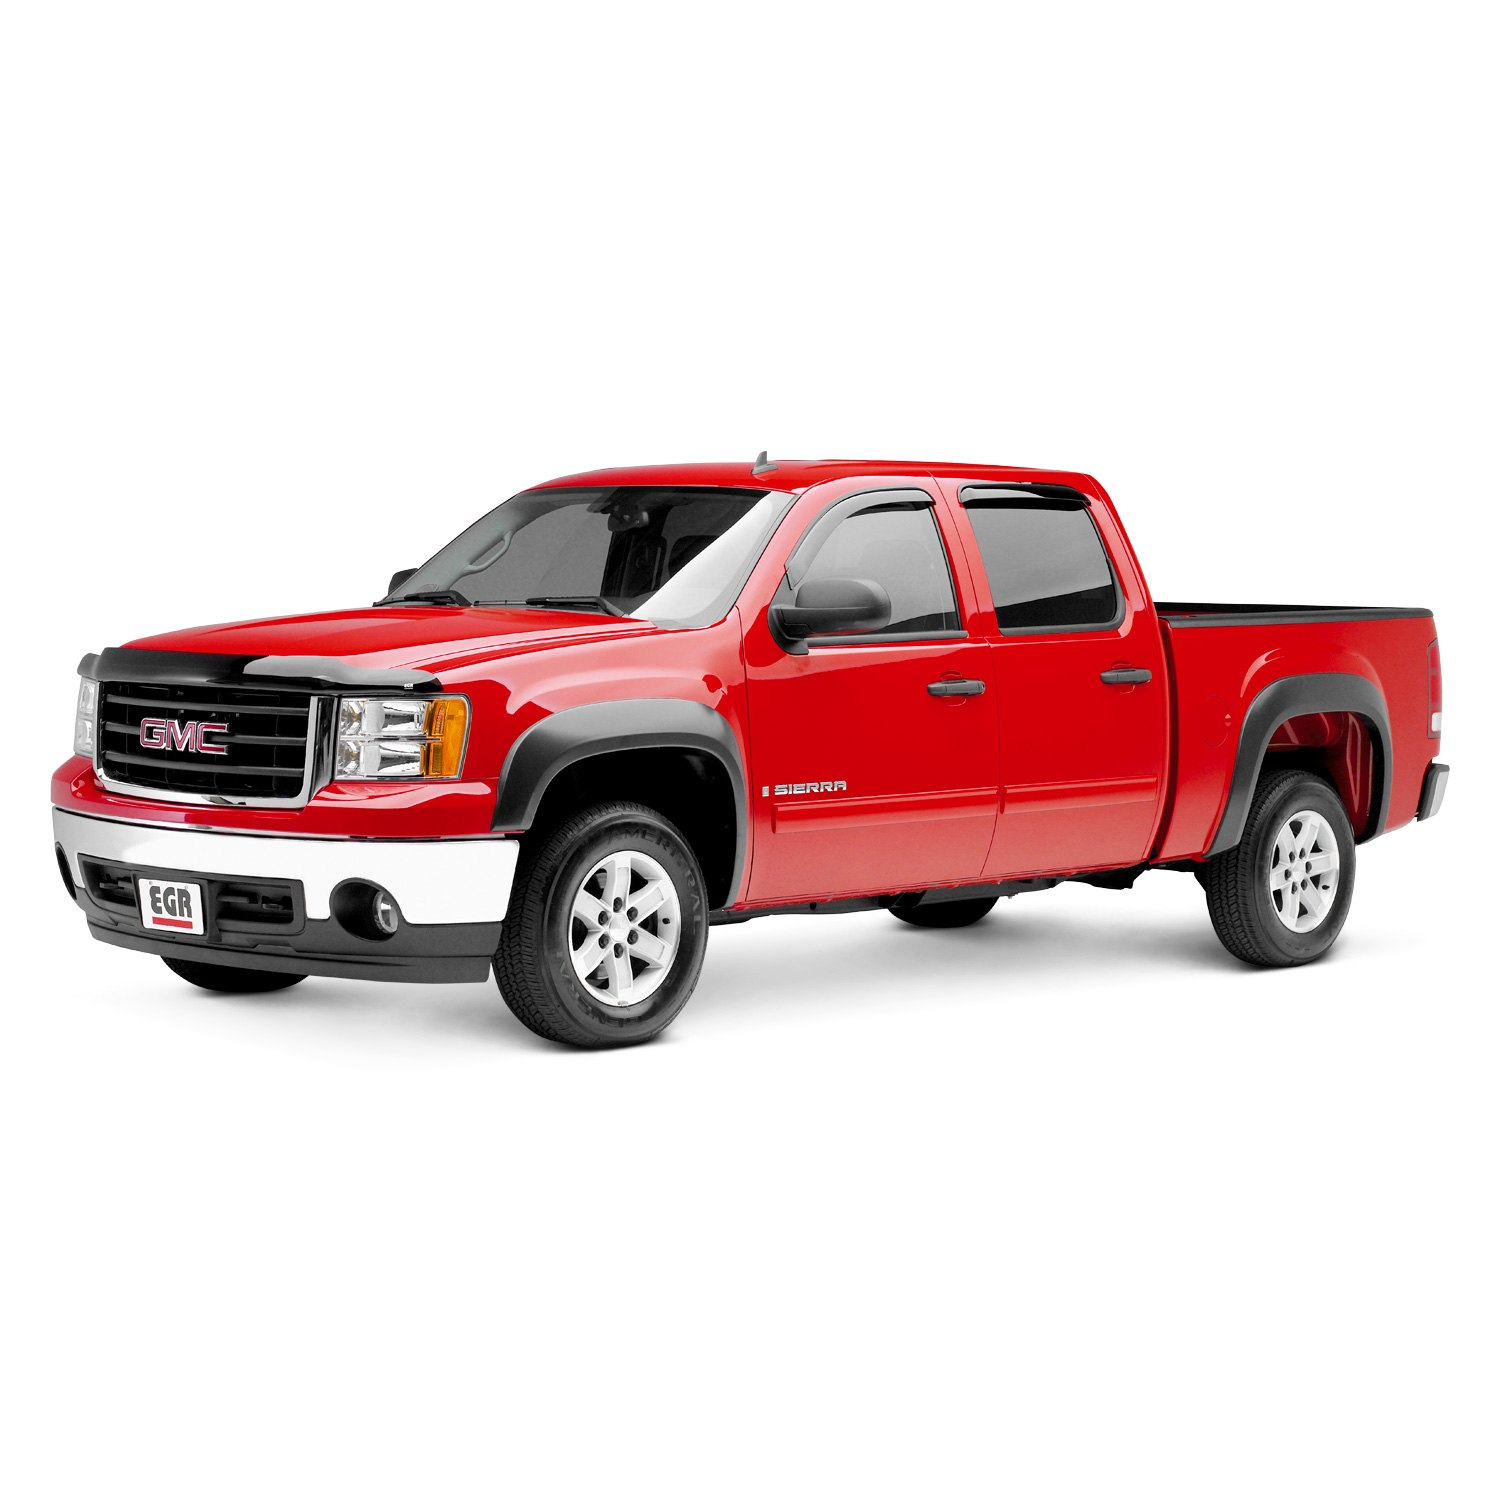 Egr 751414 Gmc Sierra 2011 2013 Rugged Black Front And